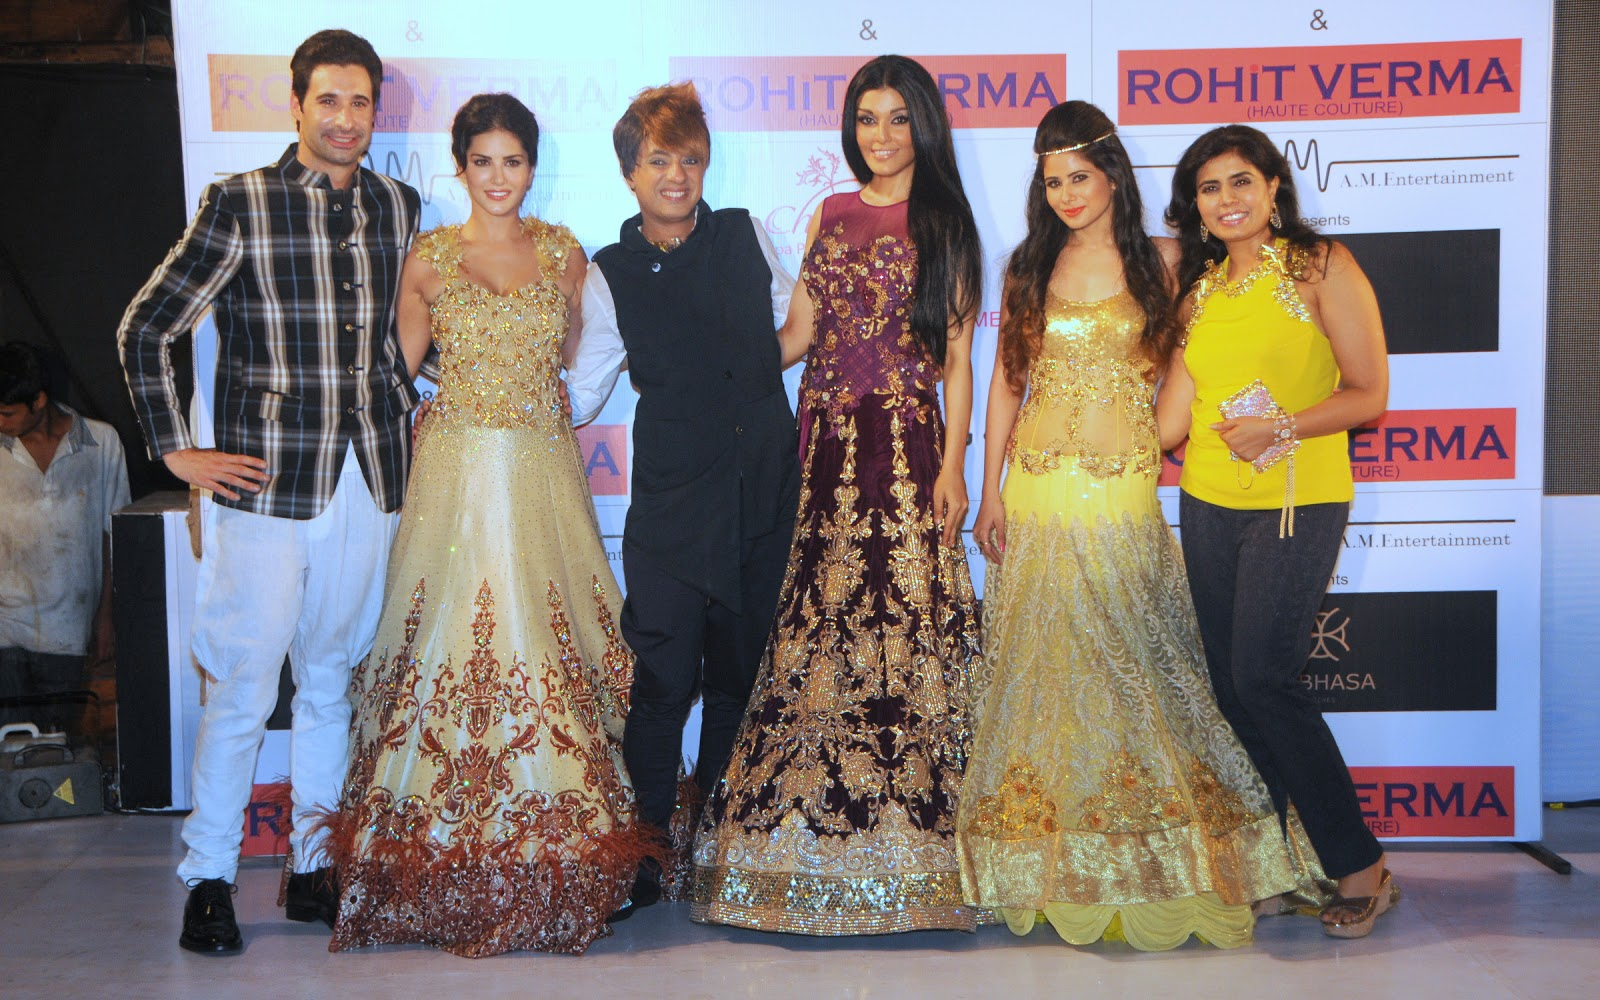 Sunny Leone & Koena unveil Rohhit Verma's new club wear collection